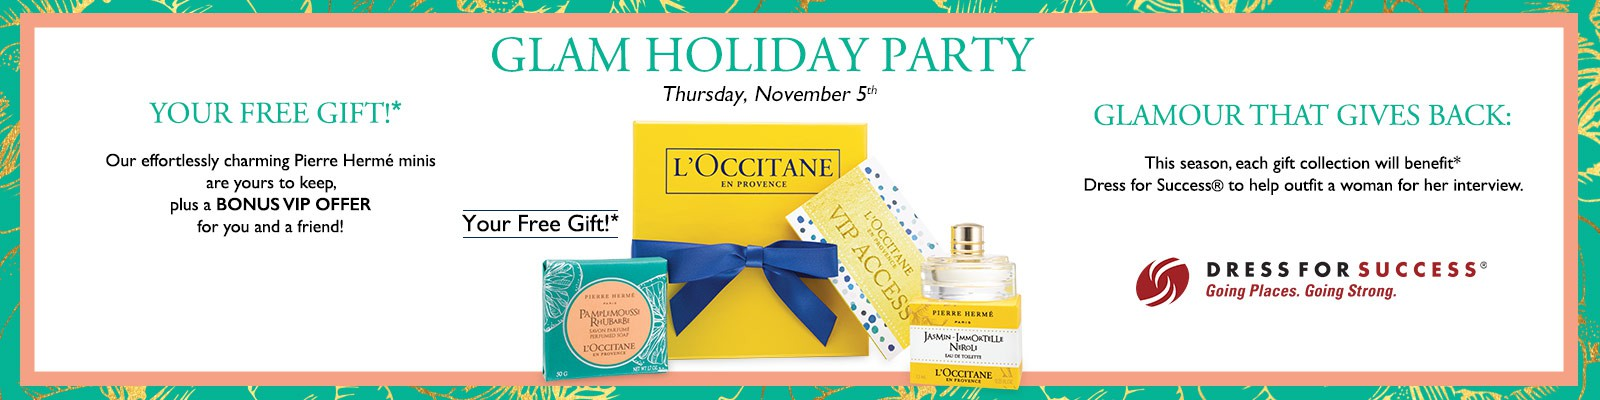 You don't want to miss this Glam Holiday Event hosted by L'OCCITANE! www.GlamKaren.com